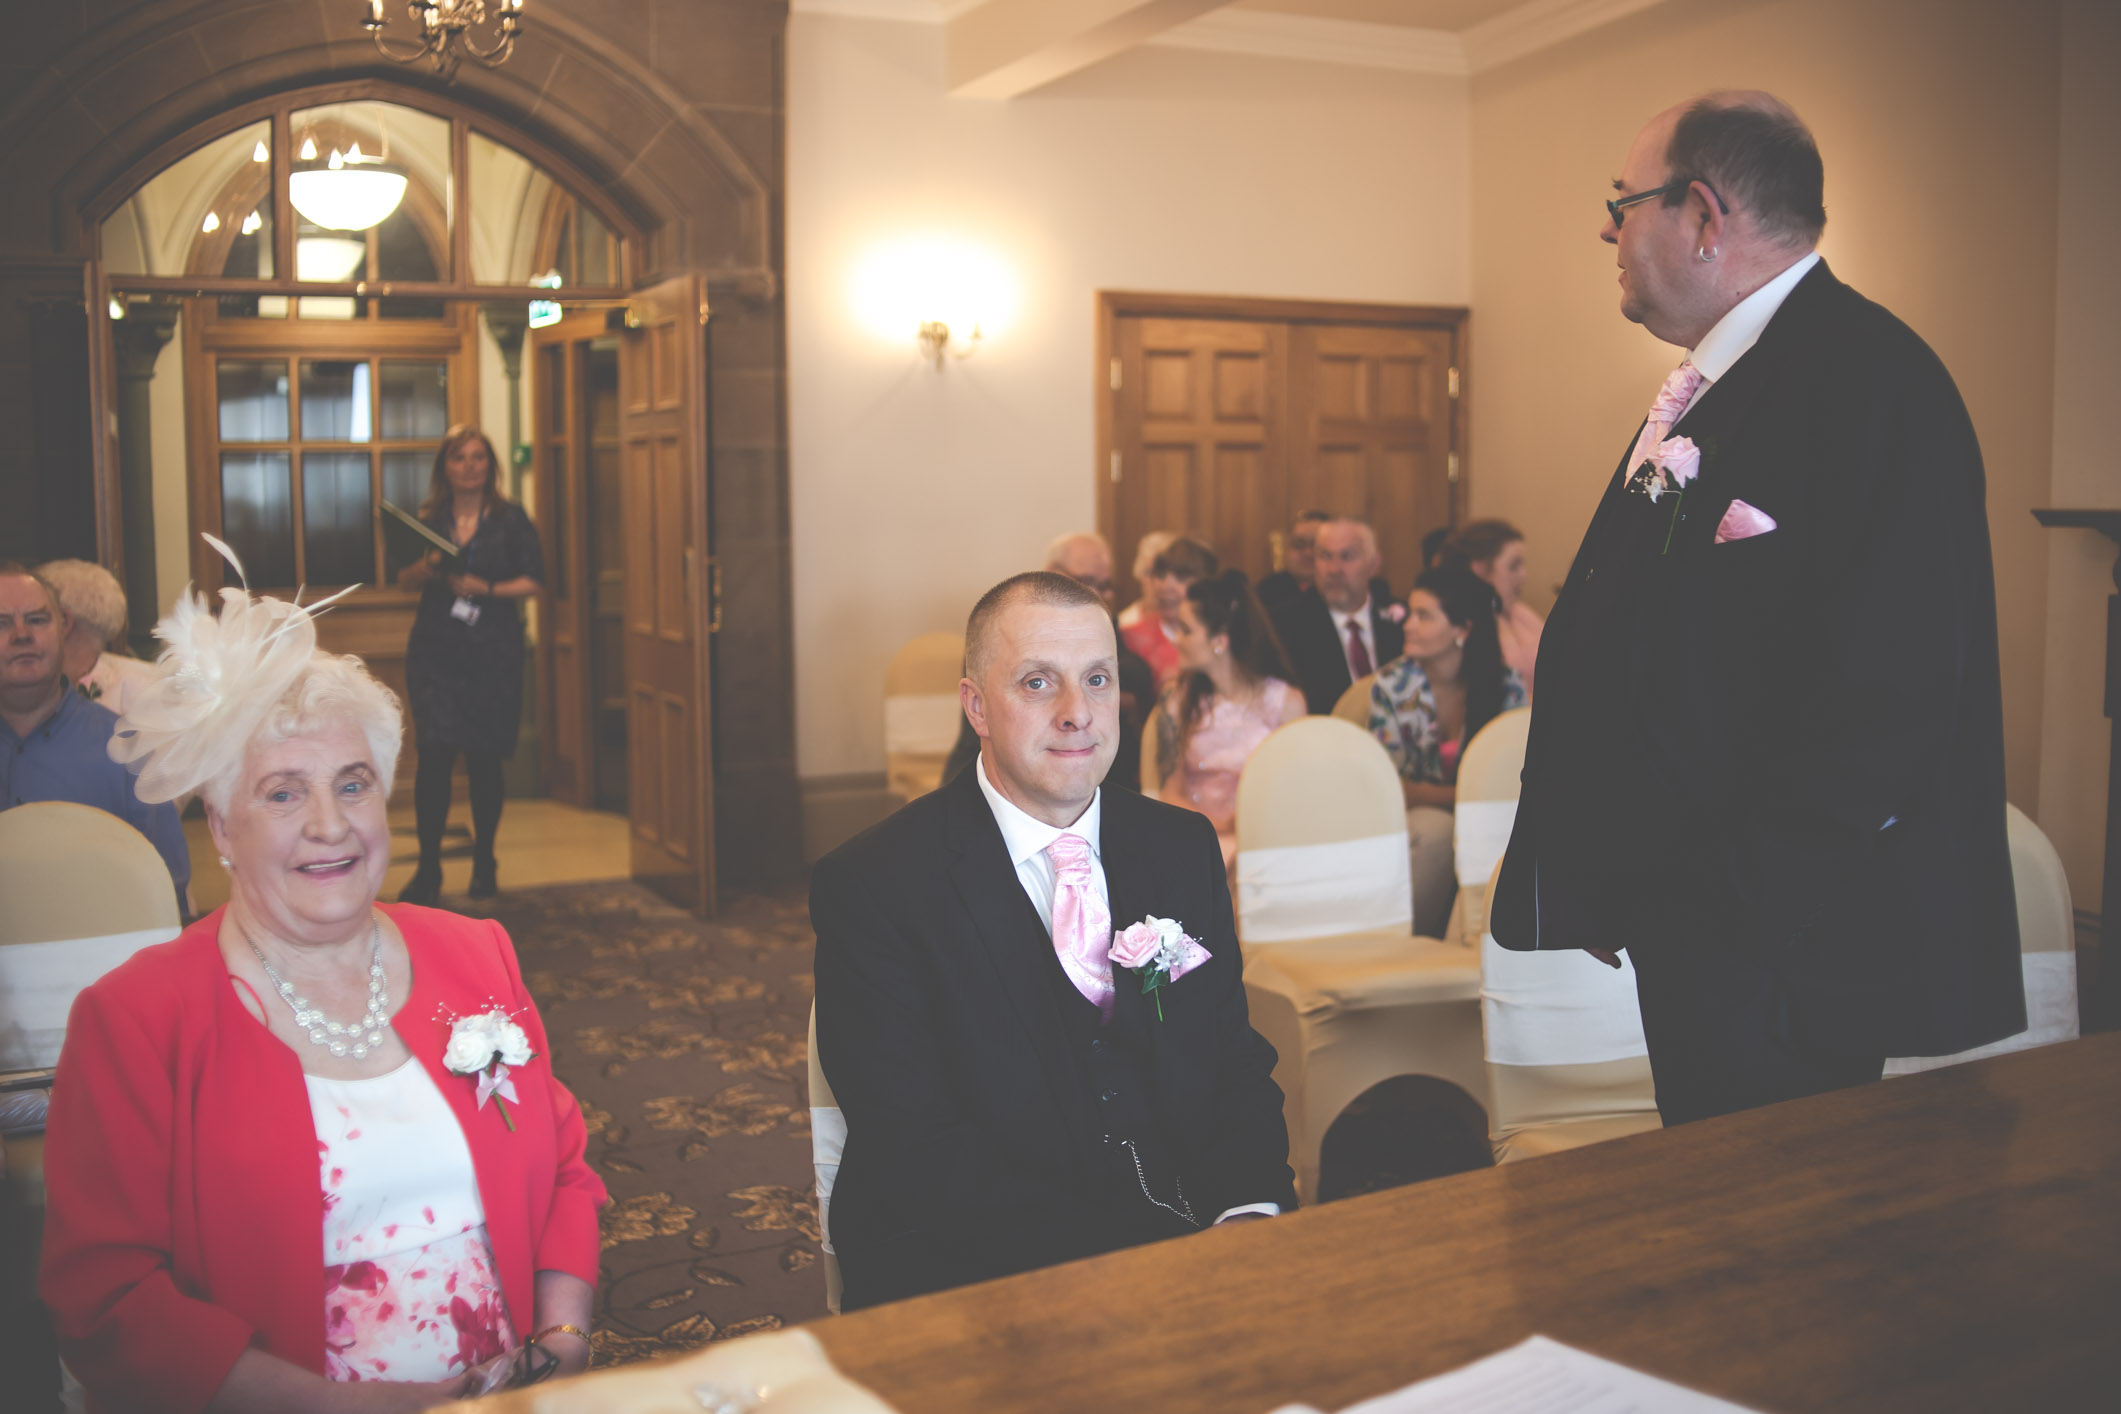 bradford-wedding-photographer-bradford-registry-office-02